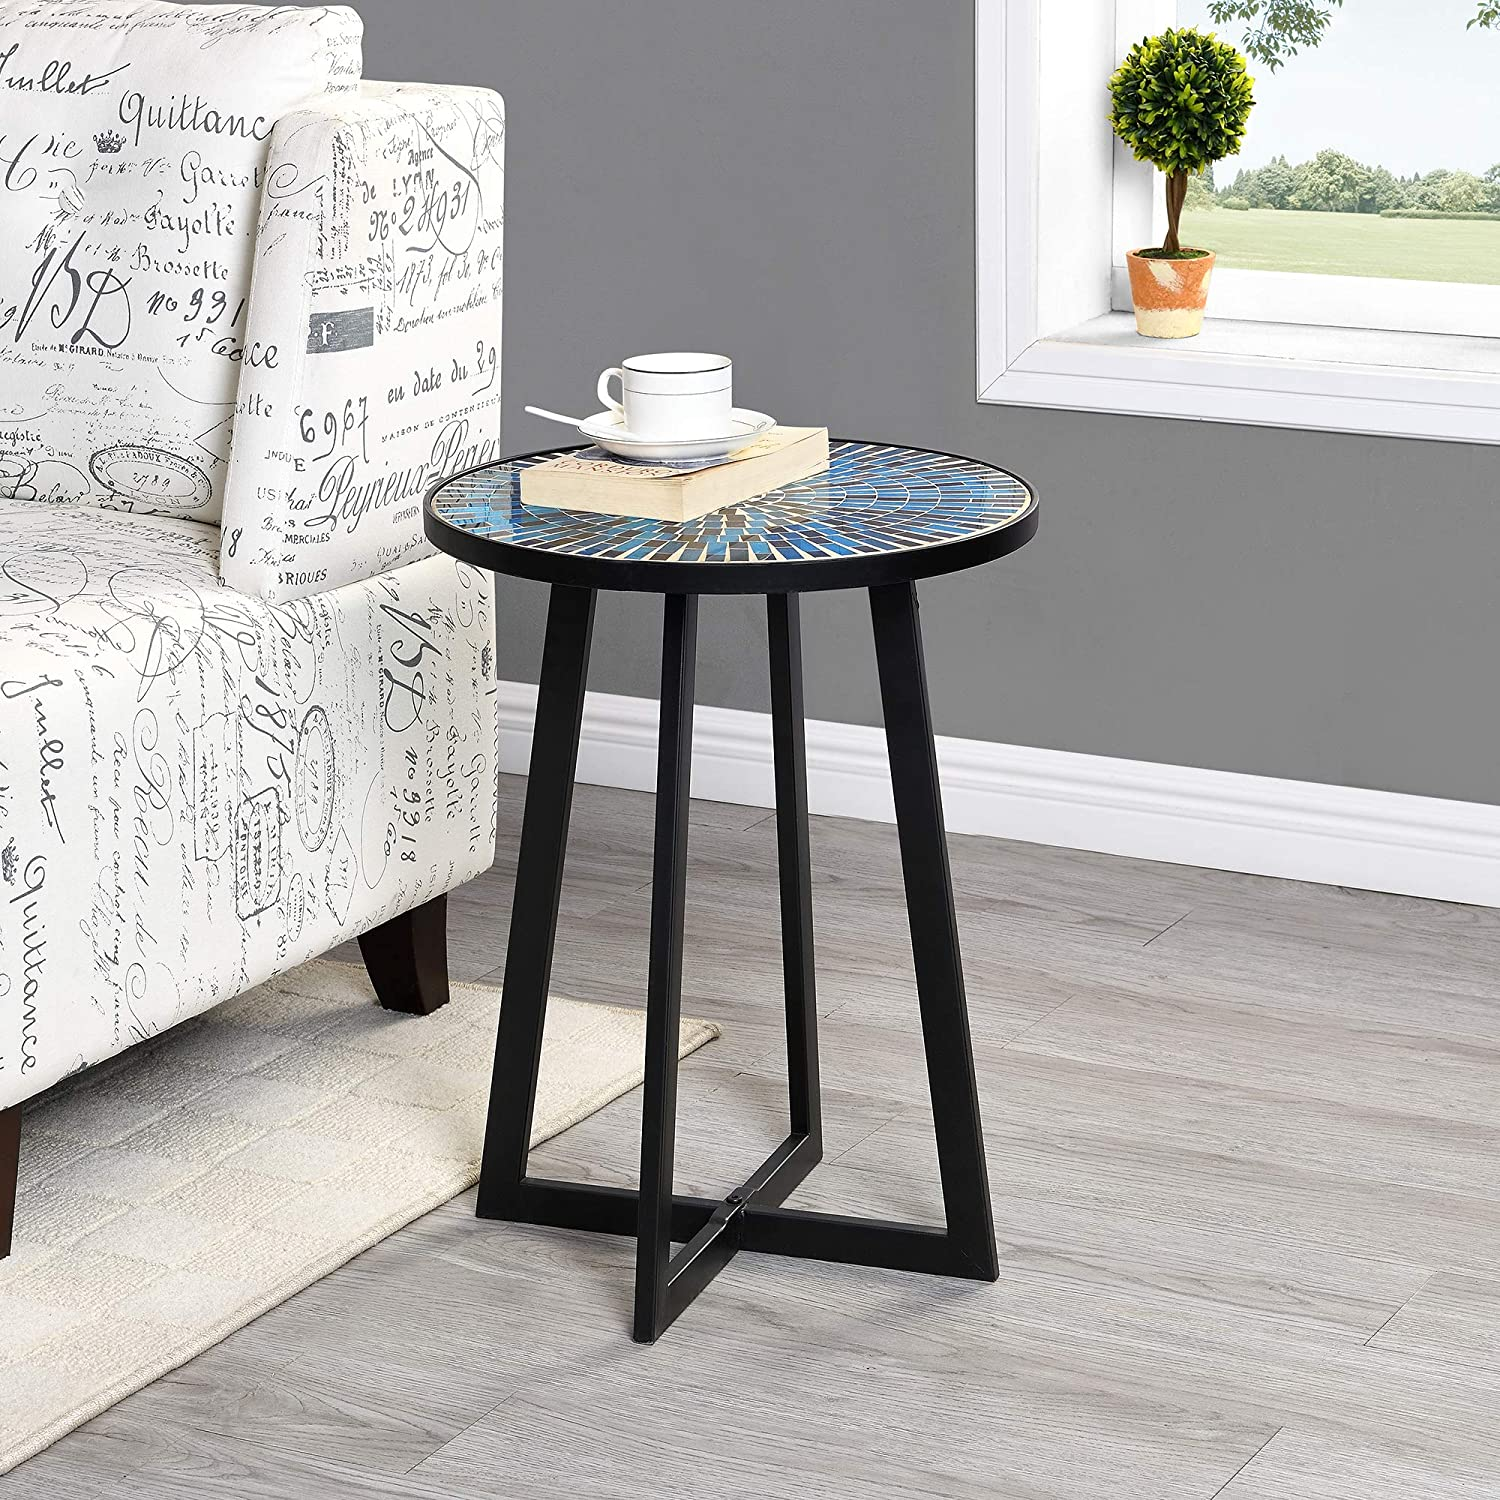 FirsTime & Co. Oasis Mosaic Outdoor Table, American Crafted, Blue, 16 x 16 x 22.5 ,, 70161